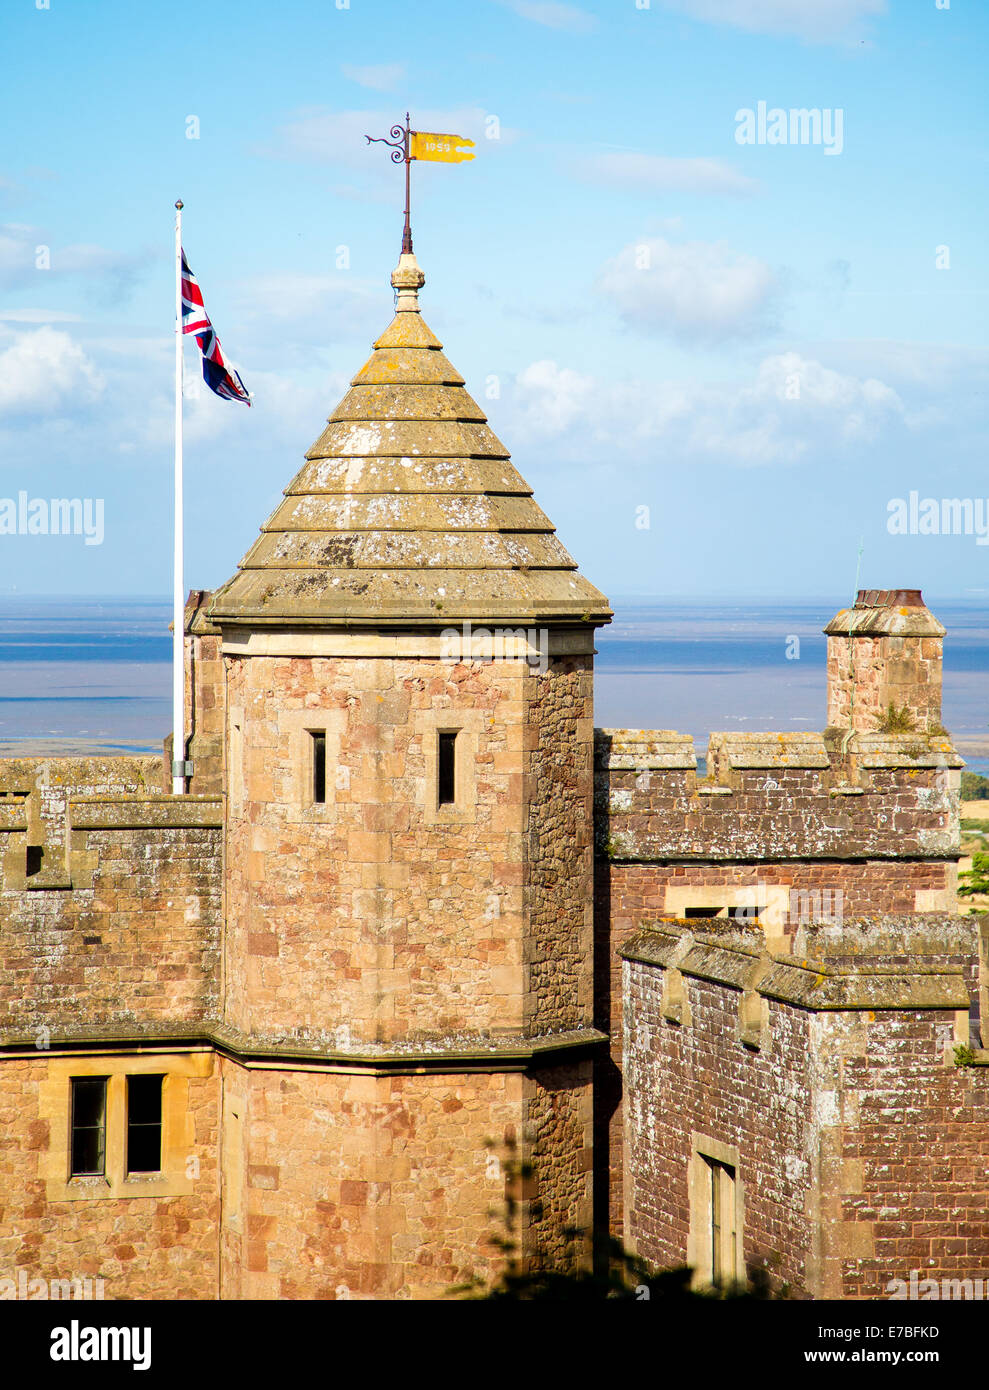 Turret and battlements of Dunster Castle in Somerset UK with the Bristol Channel in the distance - Stock Image